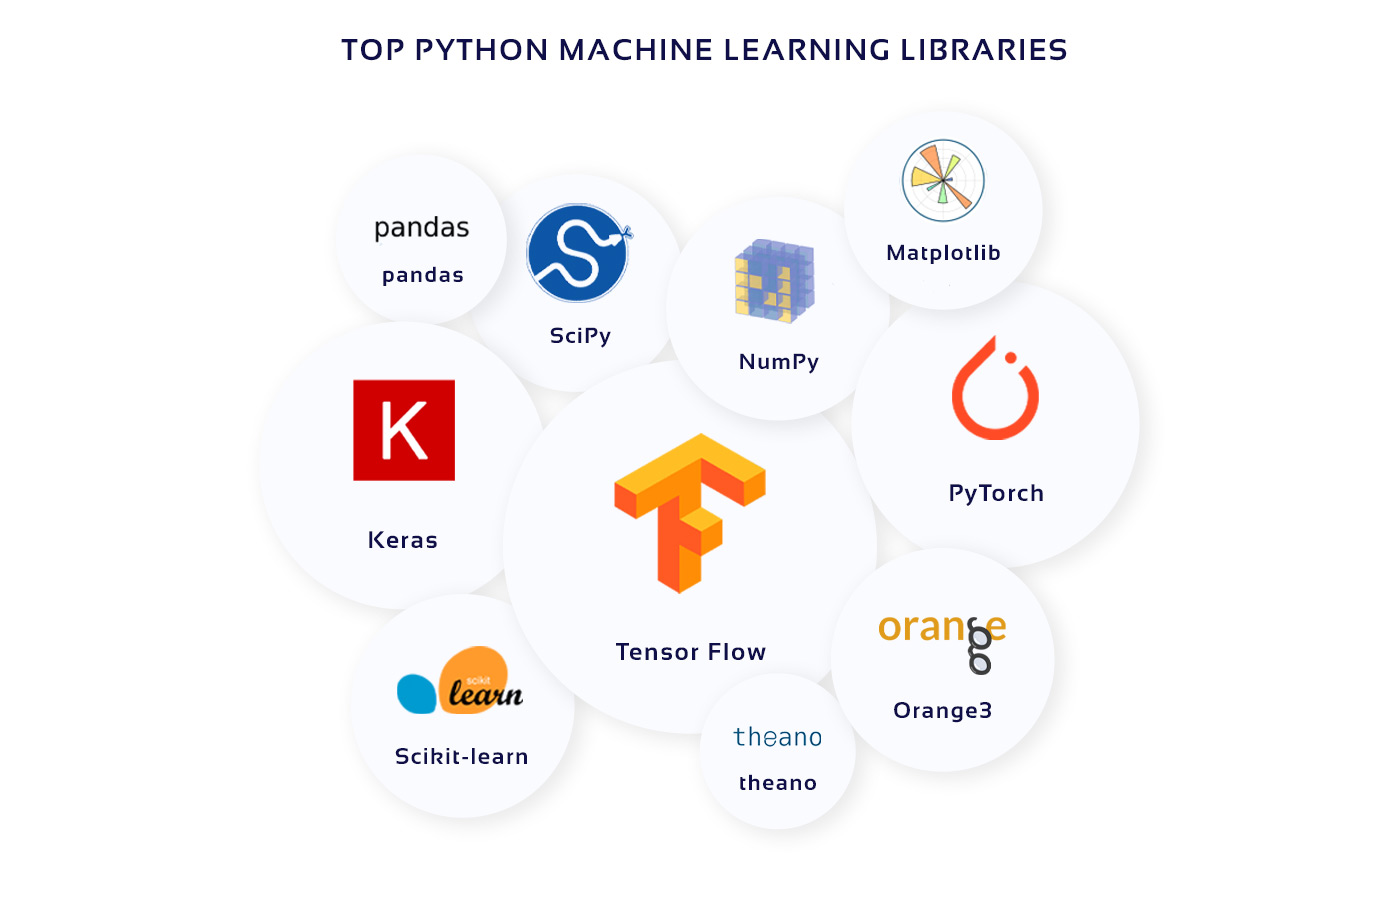 Picture with Python ML libraries logos